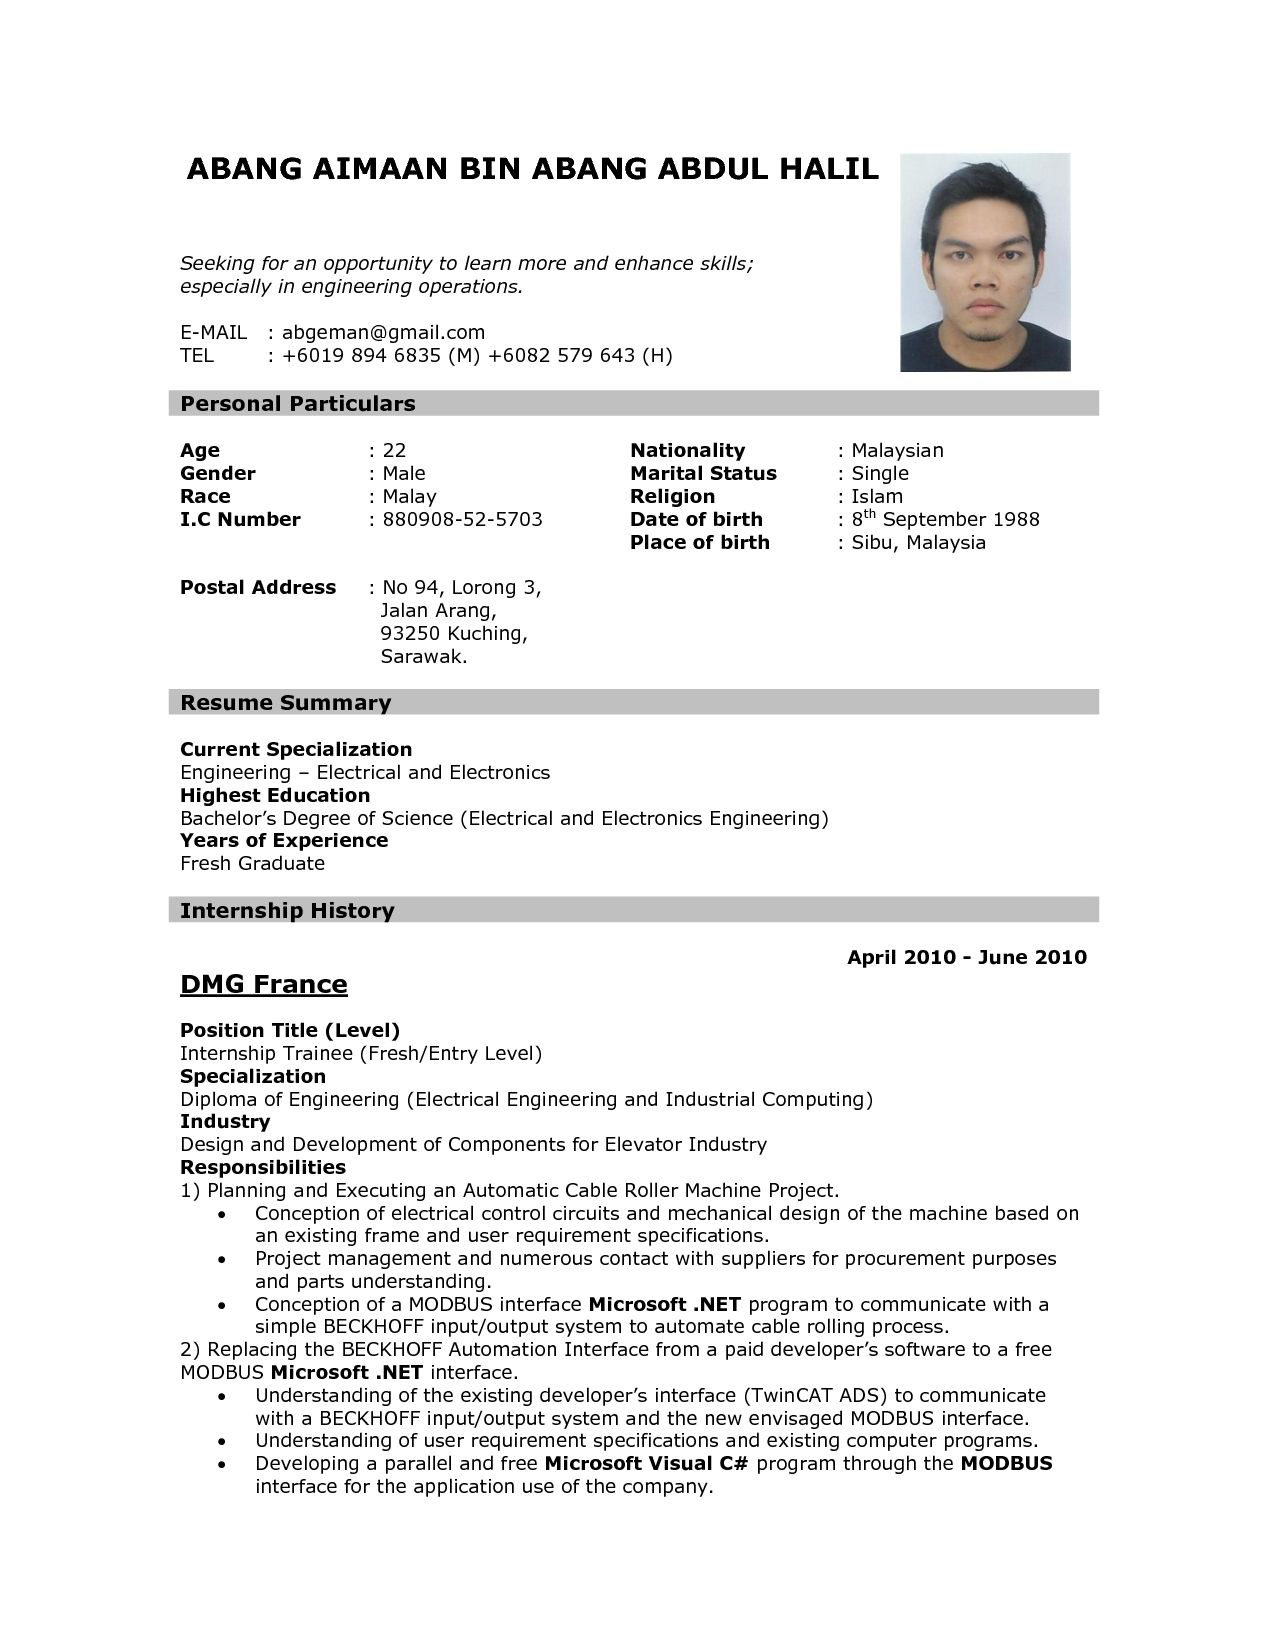 How to make resume for applying job idealstalist how to make resume for applying job altavistaventures Image collections